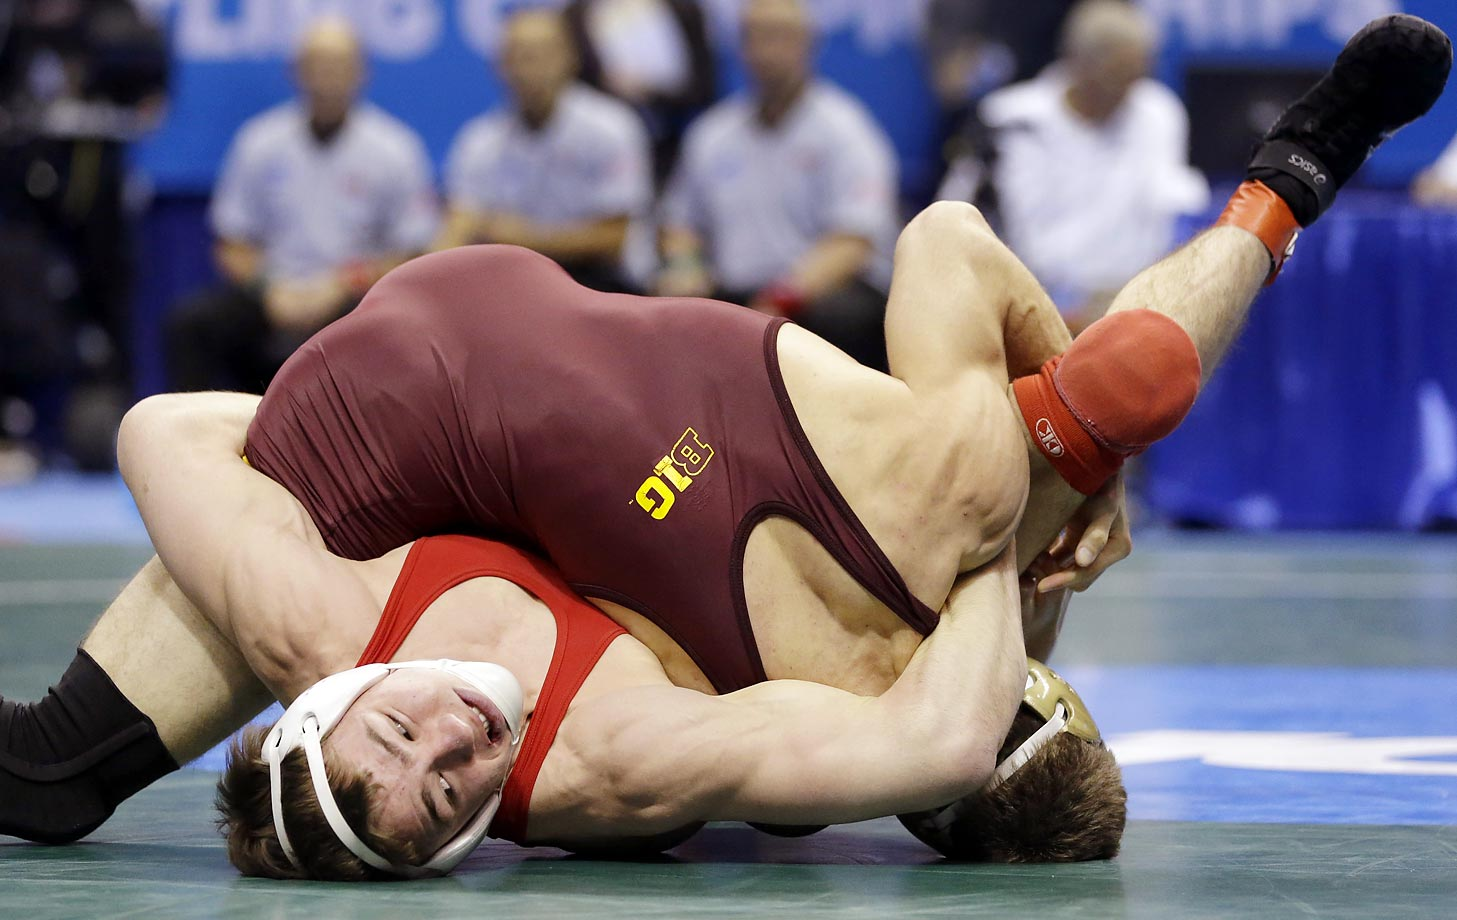 Cornellís Brian Realbuto (right) wrestles with Minnesota's Dylan Ness during their 157-pound semifinal match at the NCAA Division I Wrestling Championships in St. Louis.